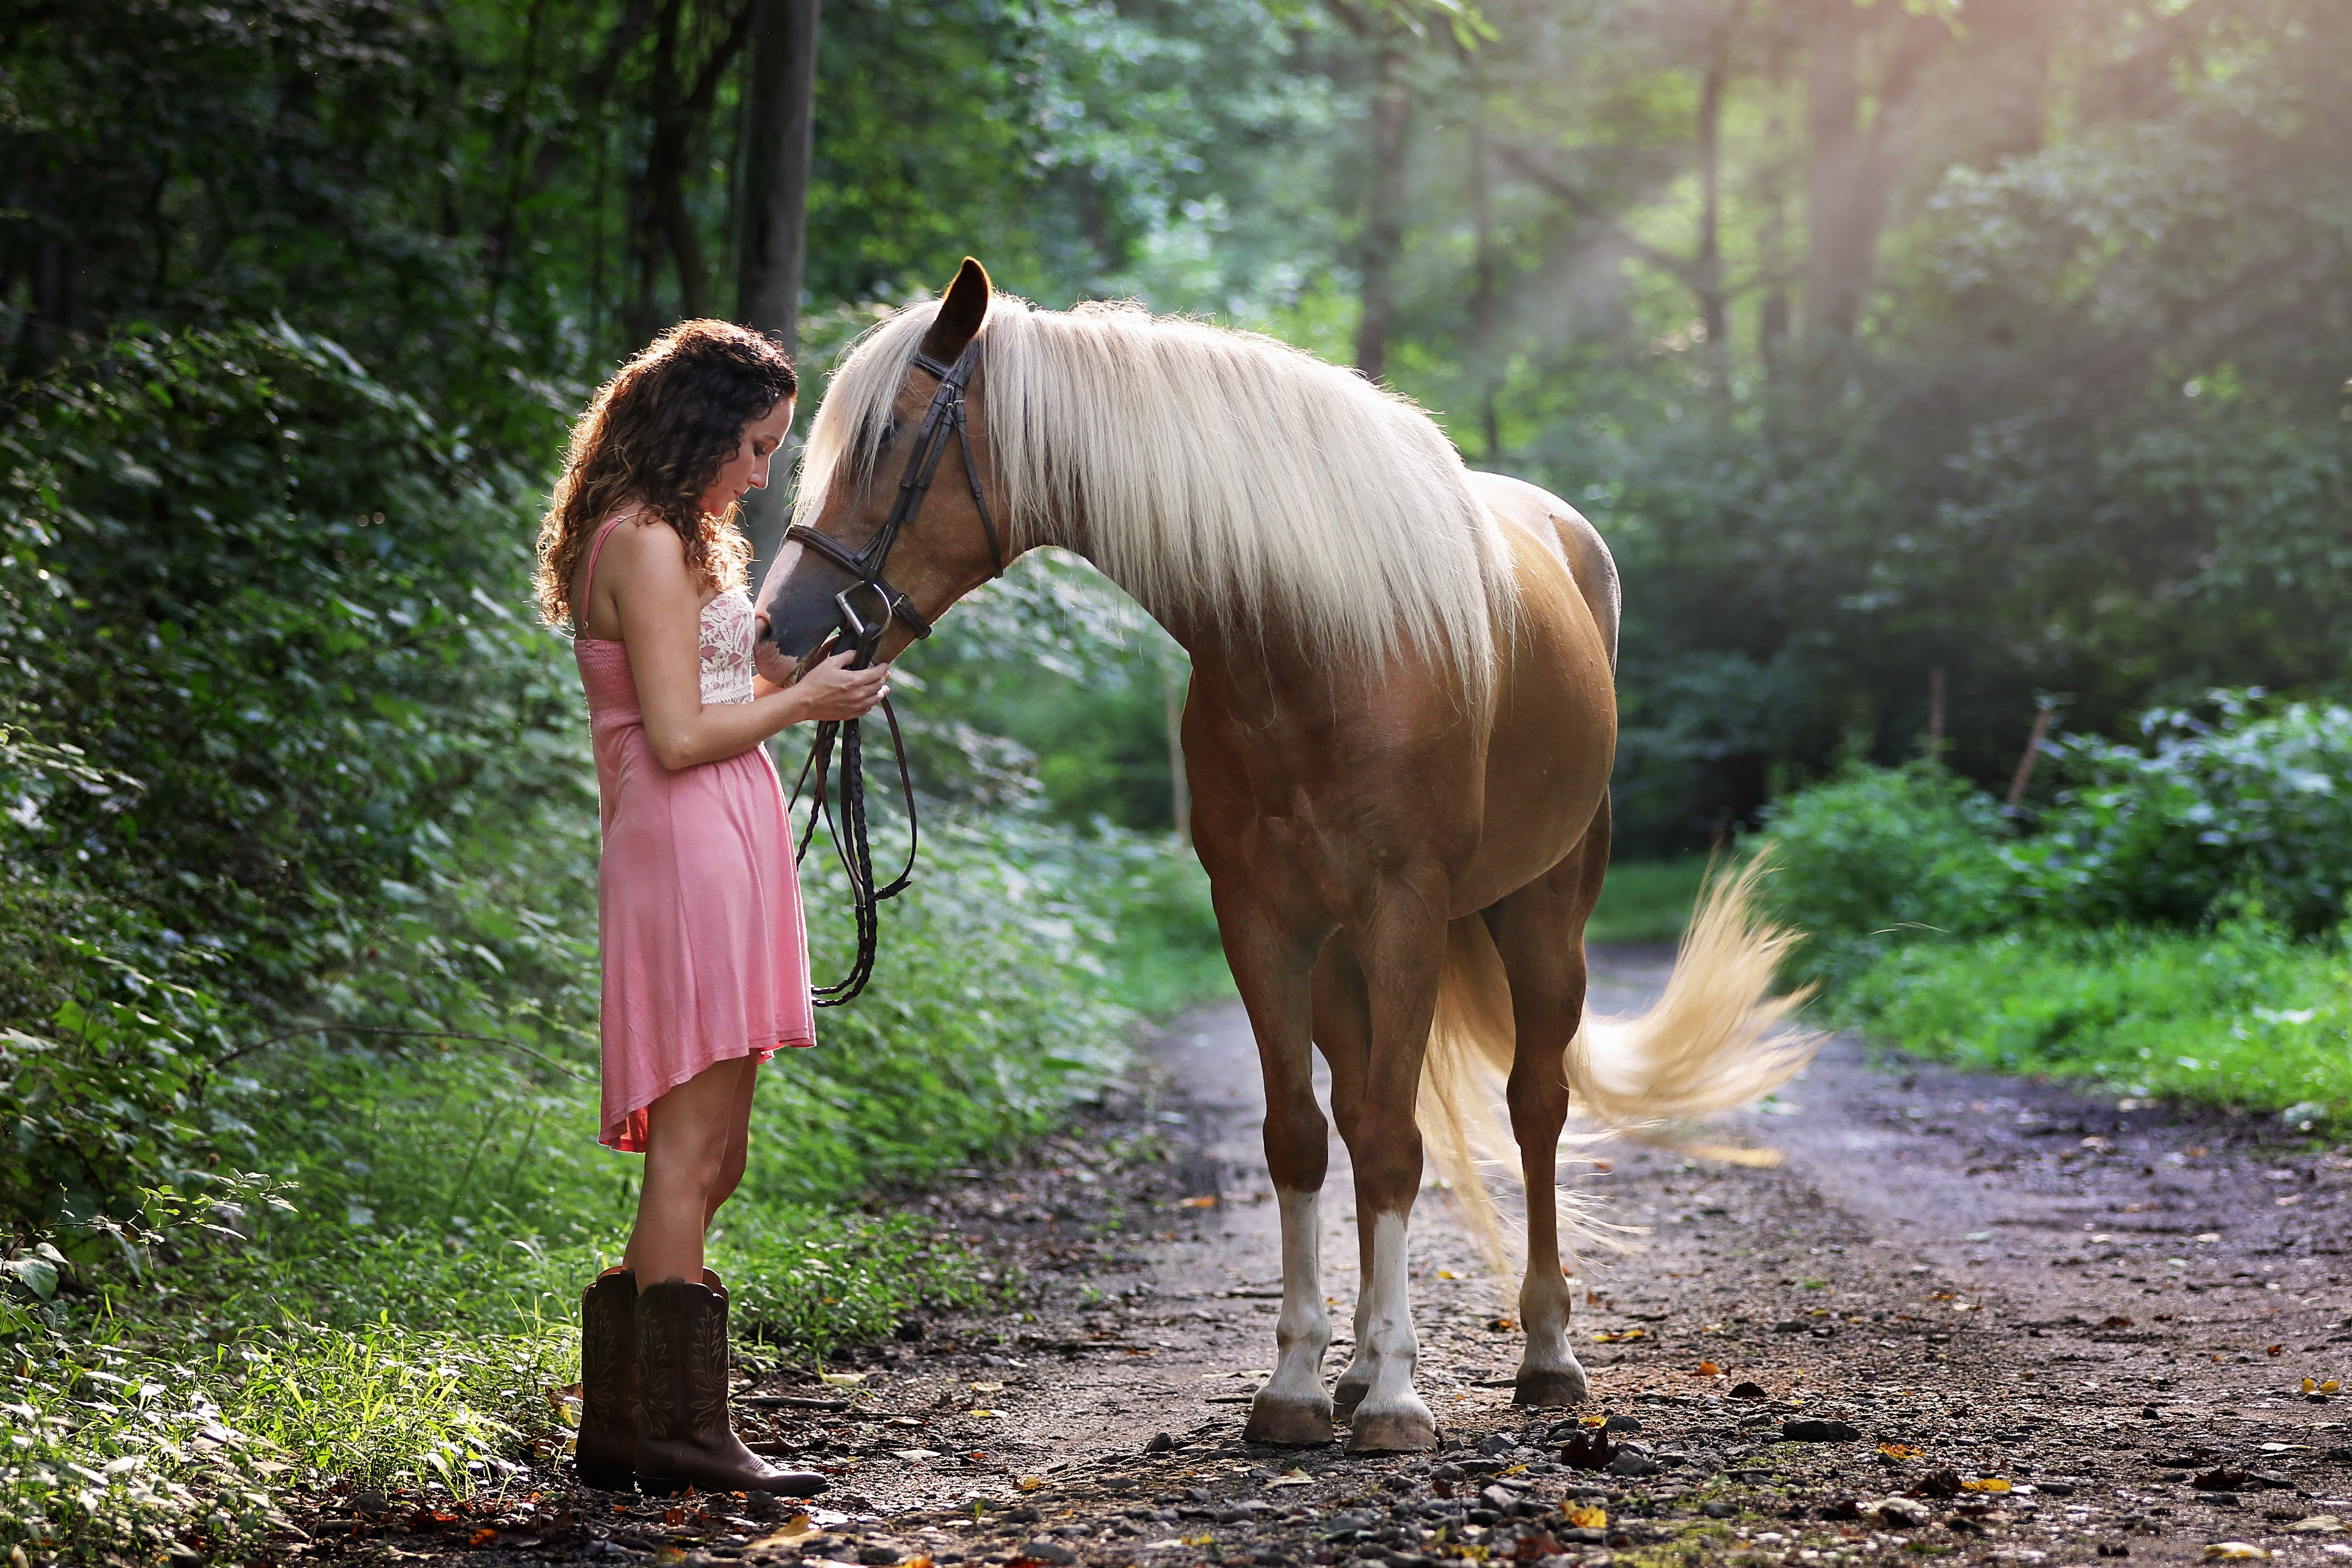 beautiful-daylight-equestrian-1090408